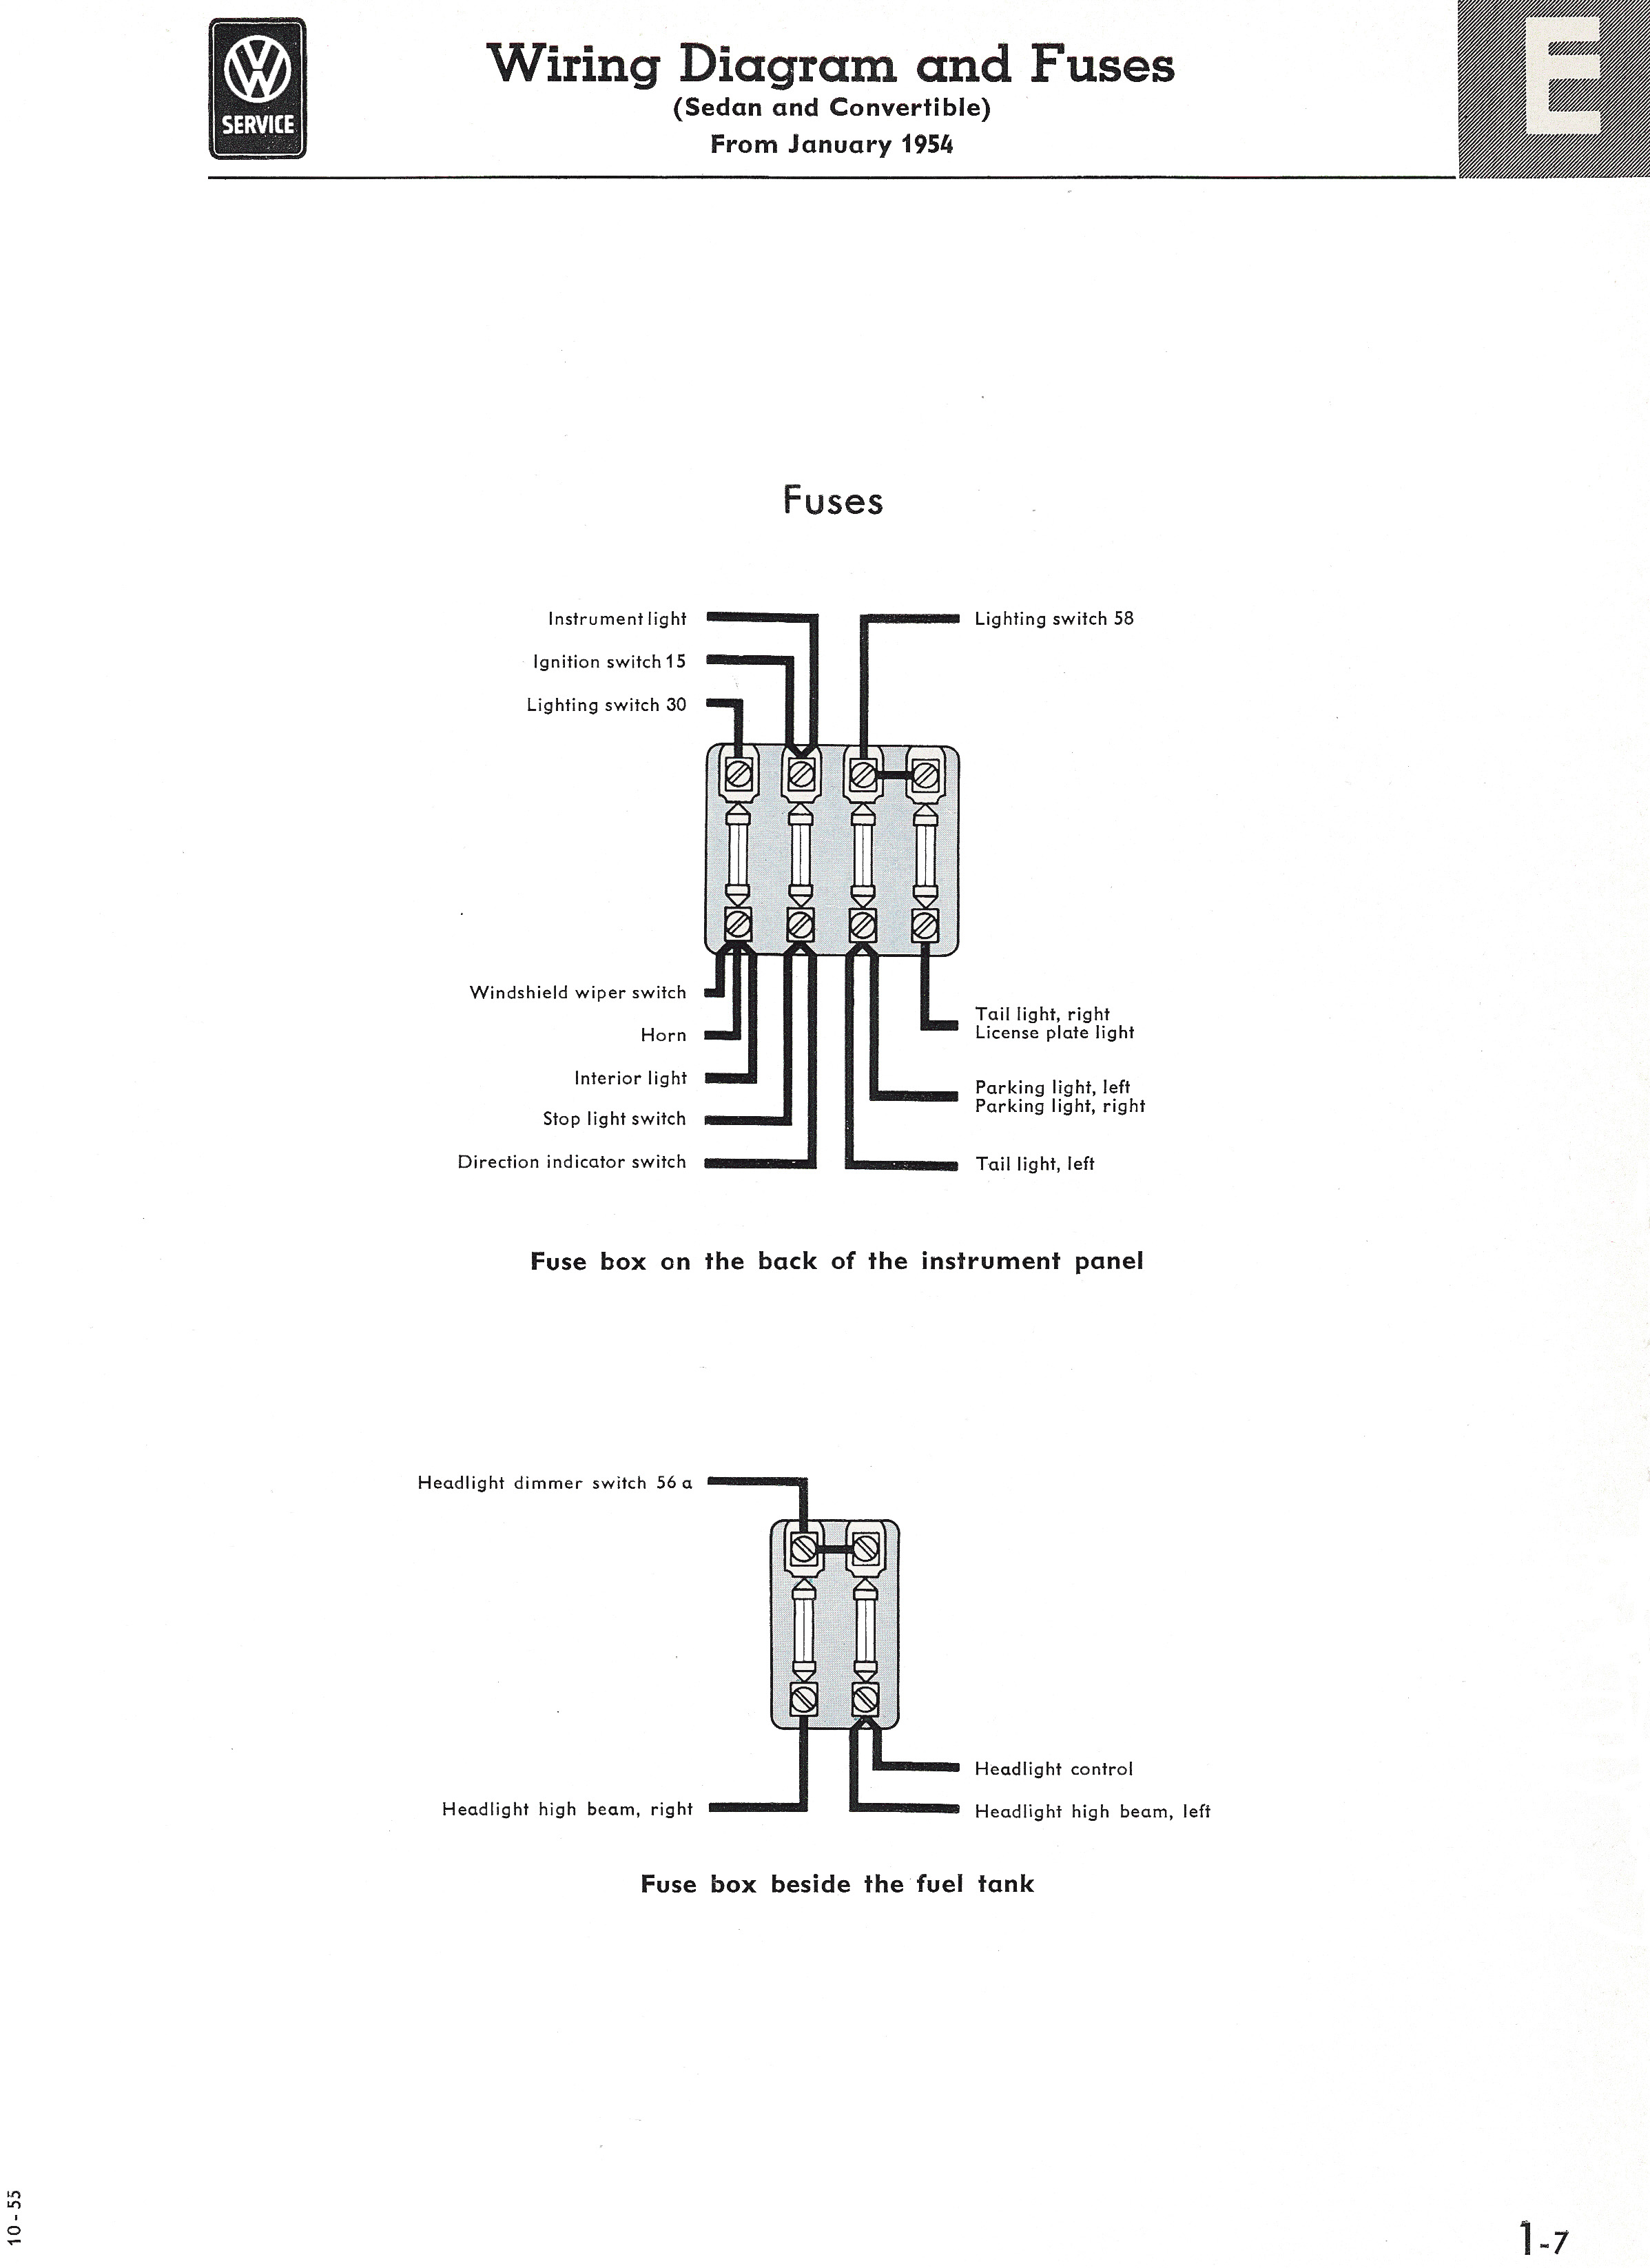 Wiring Diagram For Car Fuse Box Bmw 82